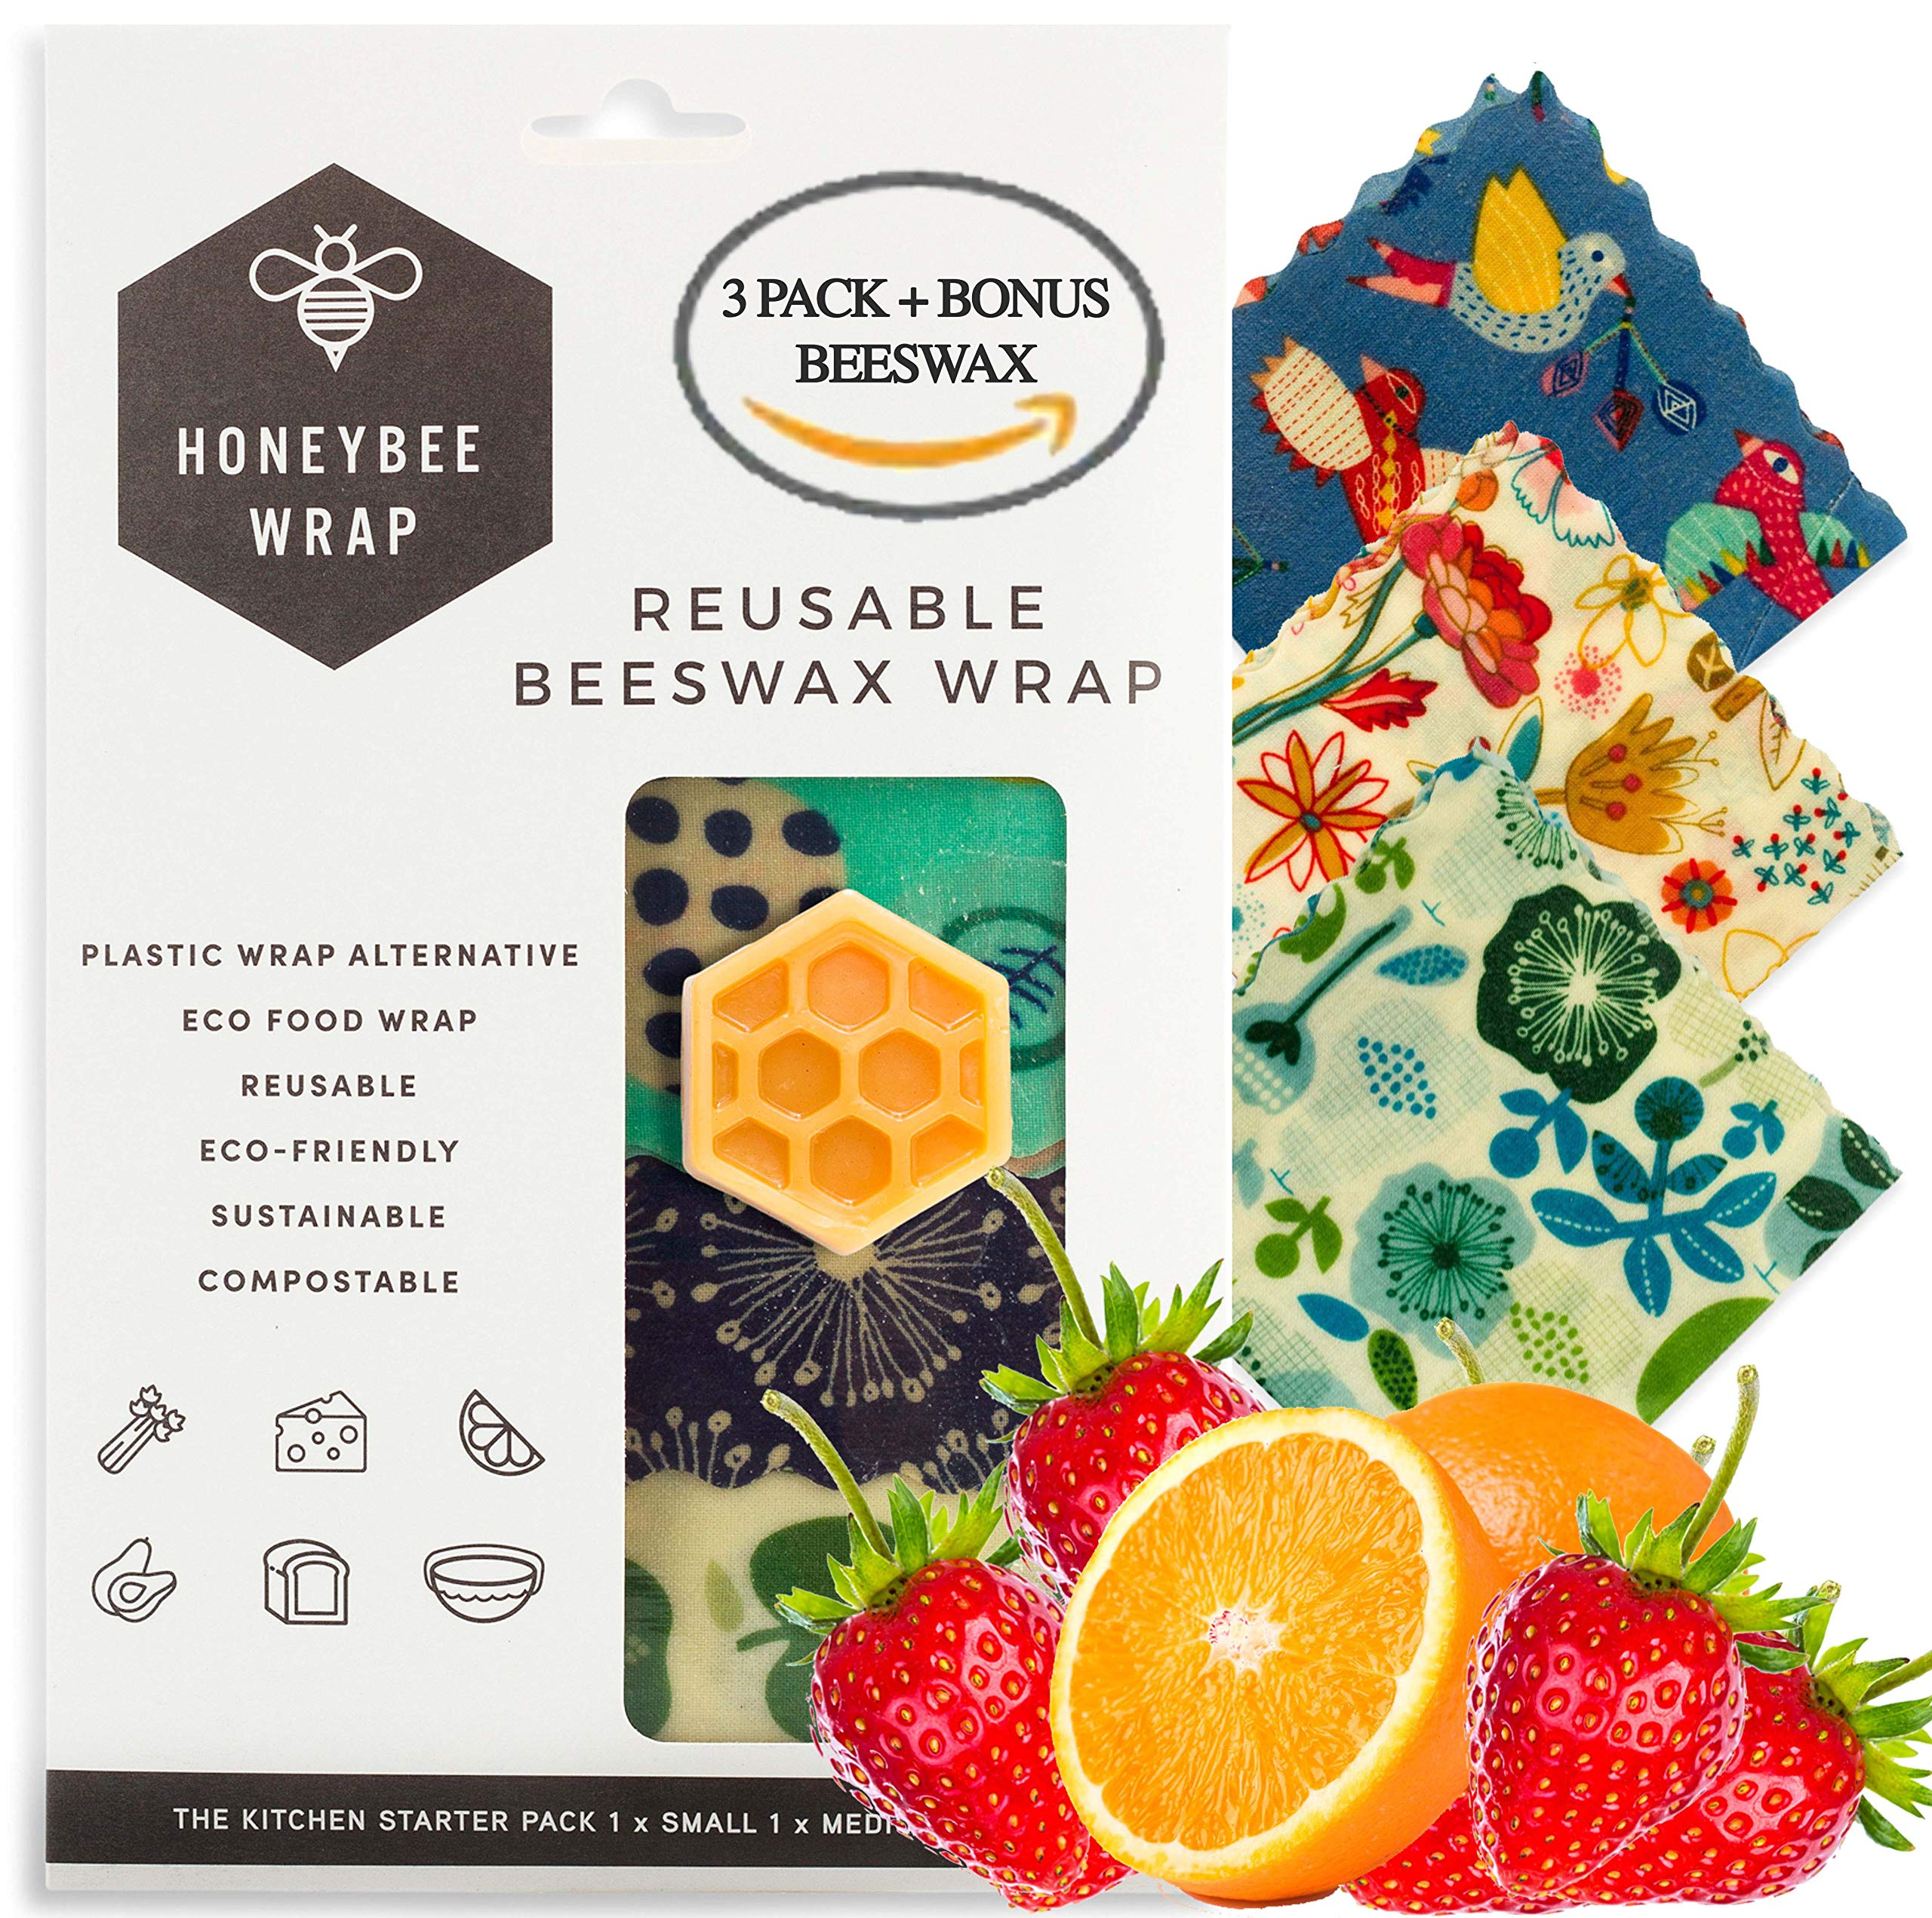 Honeybee Reusable Beeswax Food Wrap | 3 Pack with Wax Replenisher | Handmade in Australia | Eco Friendly, Reusable, Biodegradable, Bees Wrap | Bees Wax Paper Wrap | Beewax Wrapping by HONEYBEE WRAP